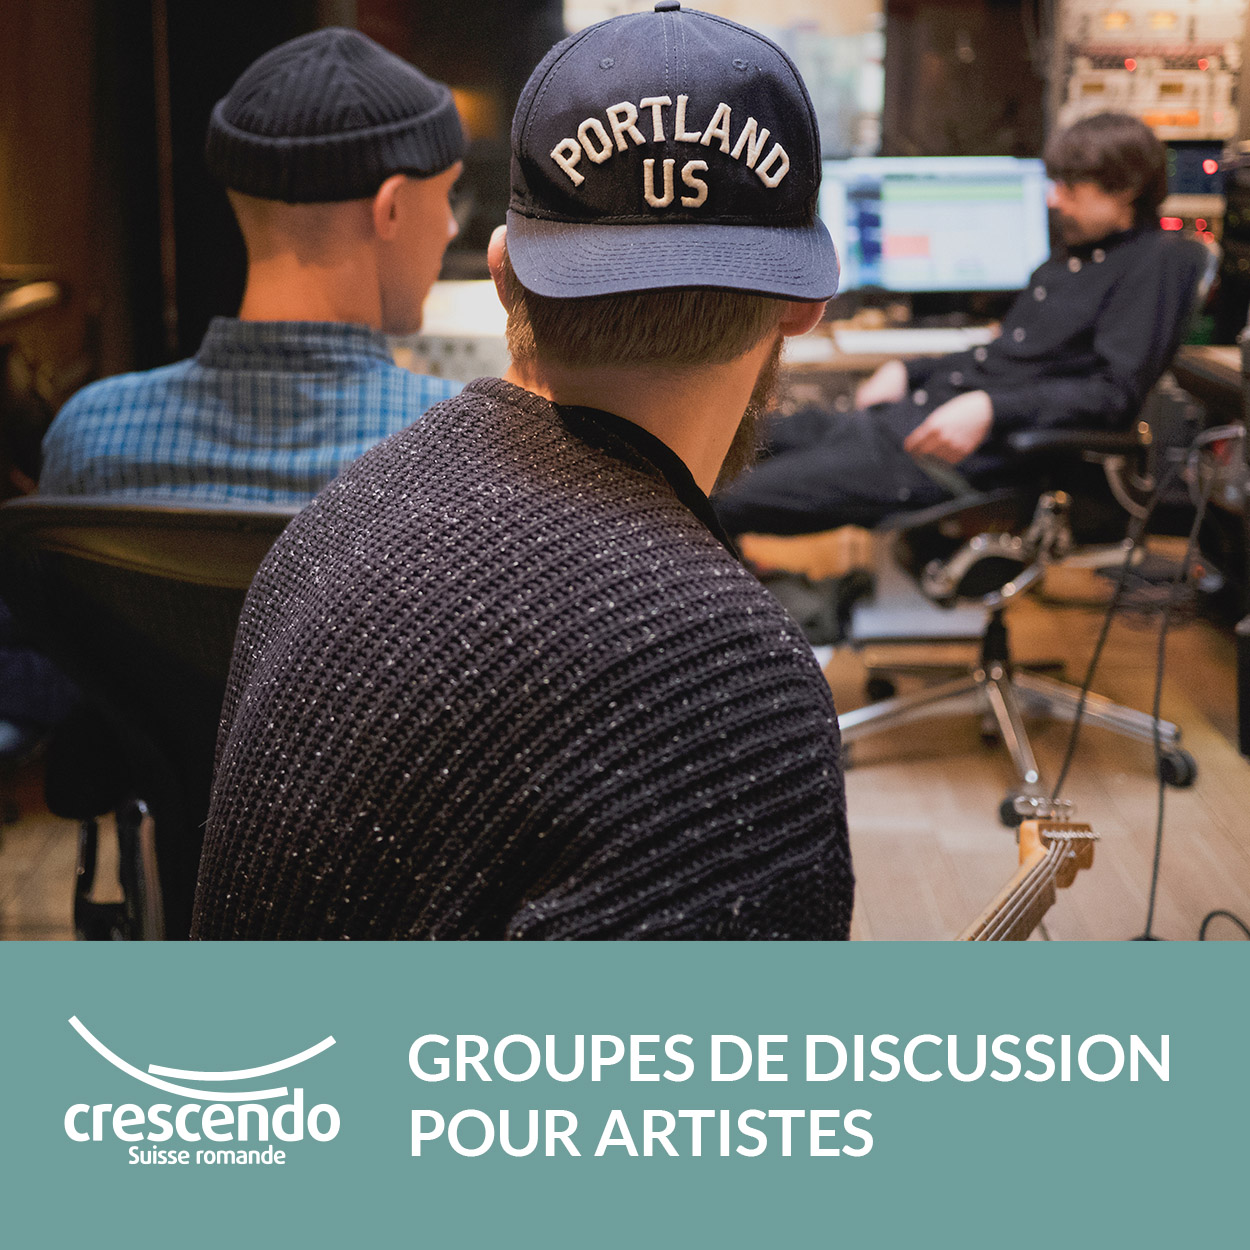 Groupes de discussion pour artistes.jpg